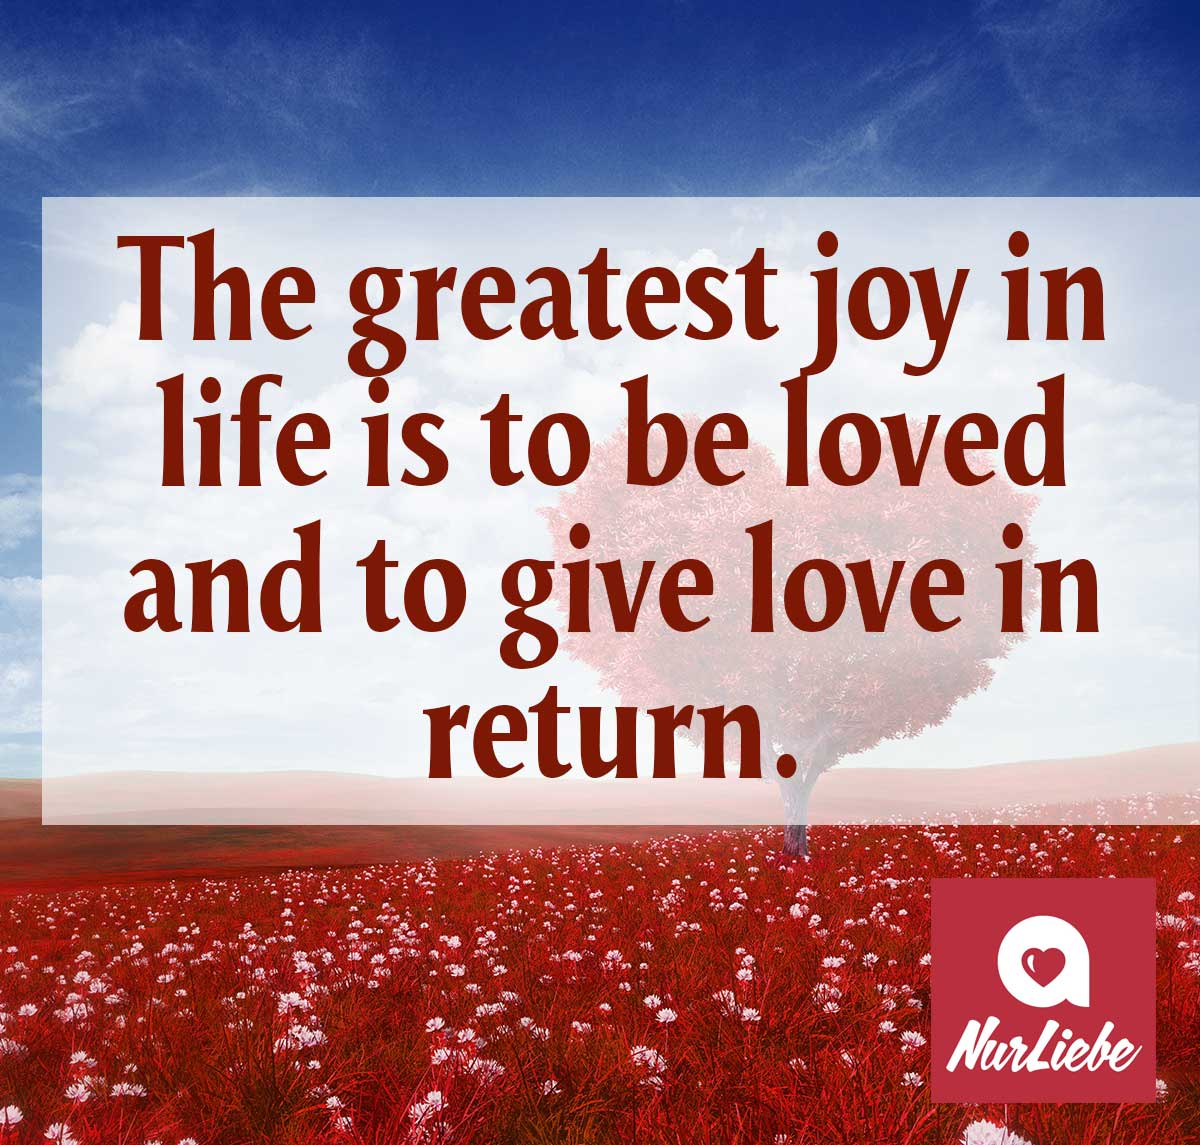 Liebesspruch auf Englisch The greatest joy in life is to be loved and to give love in return.